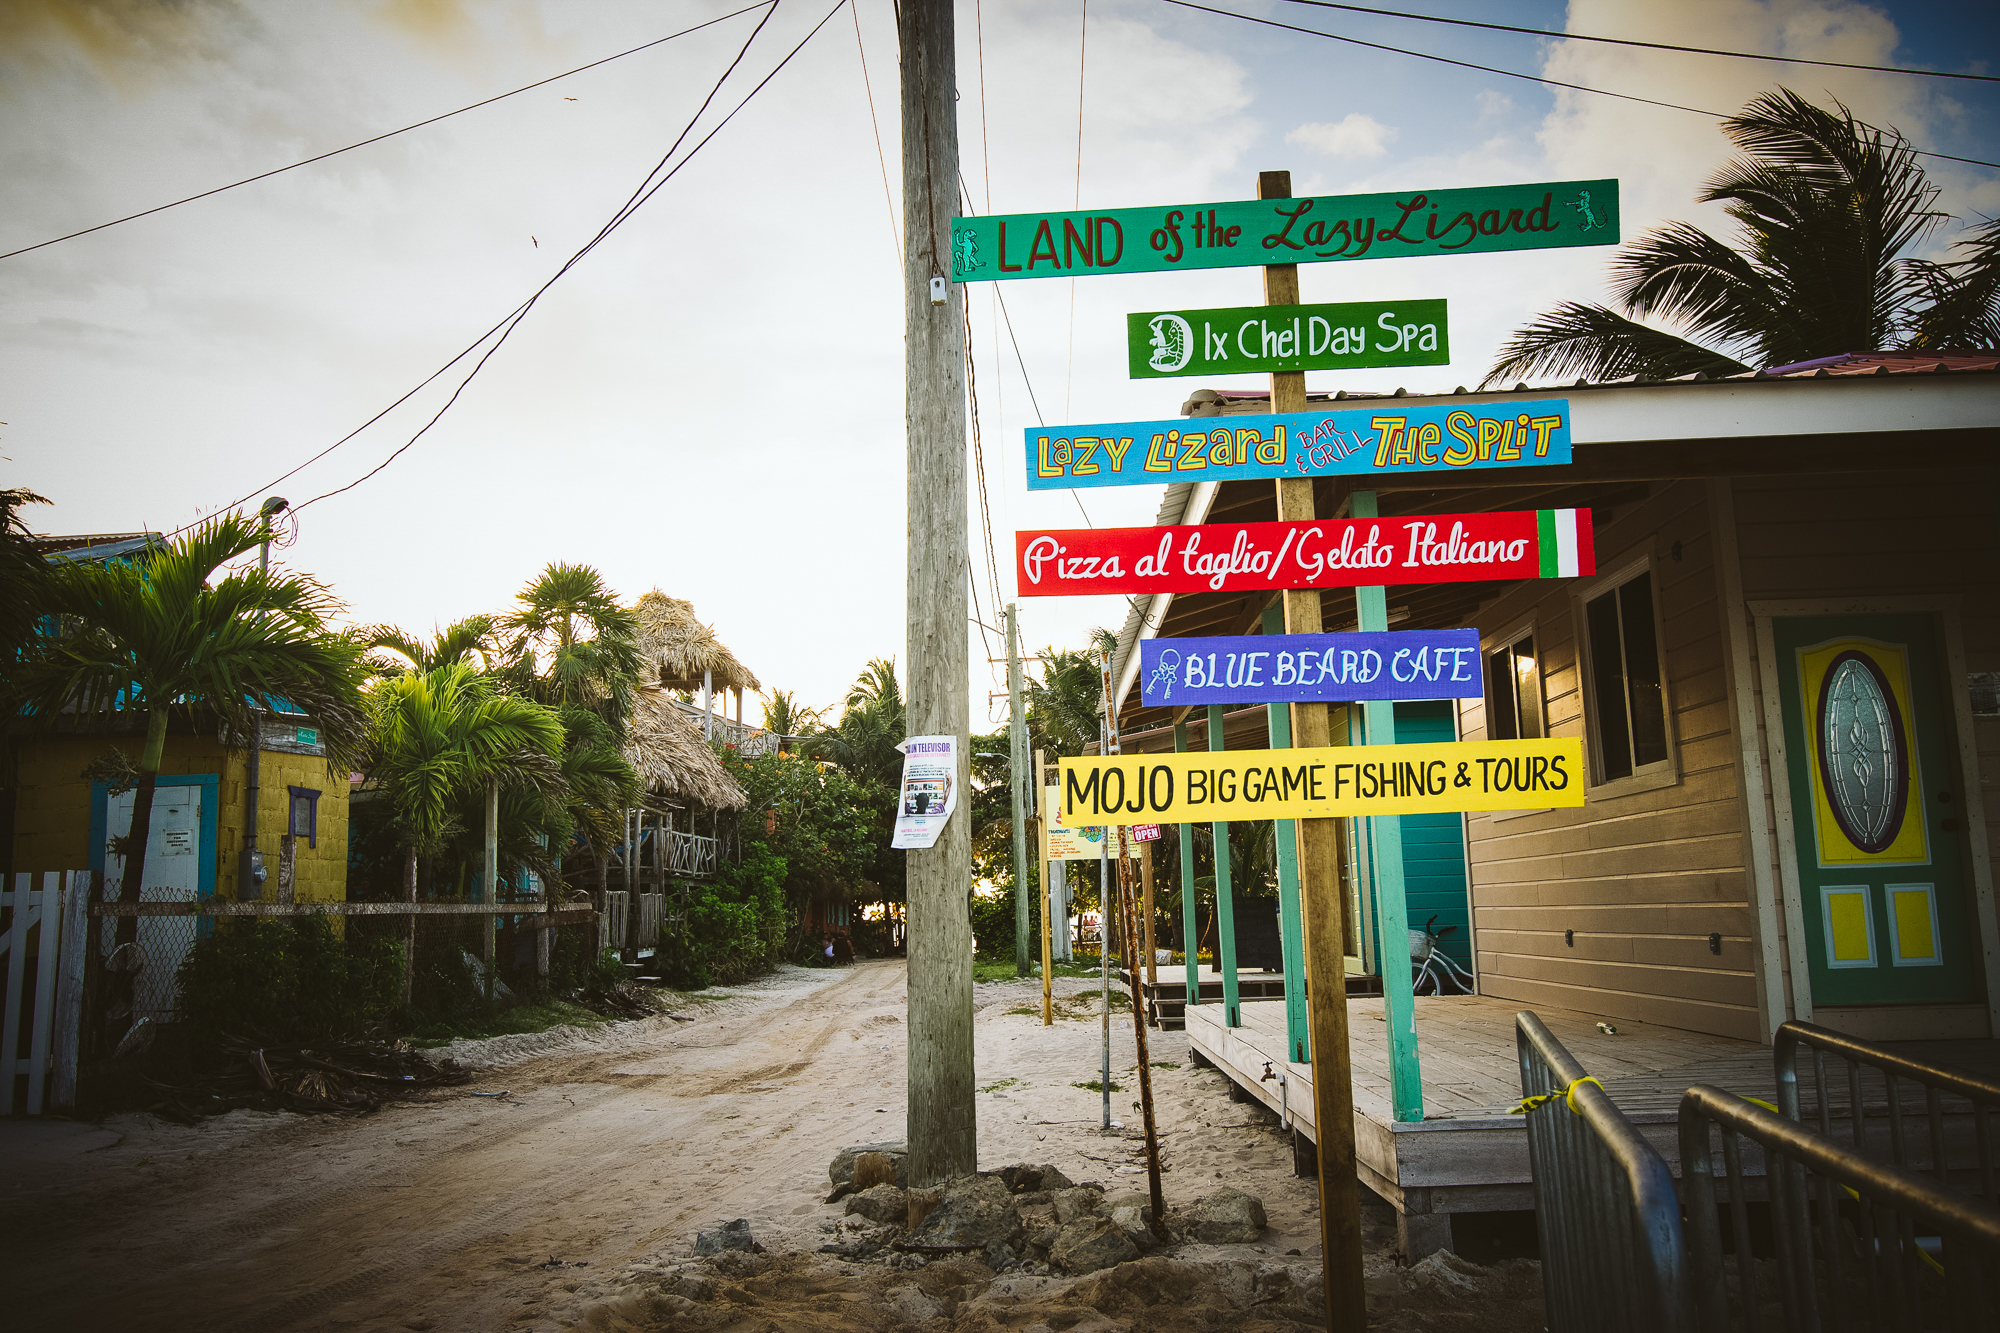 Land of the  Lazy Lizard  at the far end of the inhabited part of Caye Caulker.